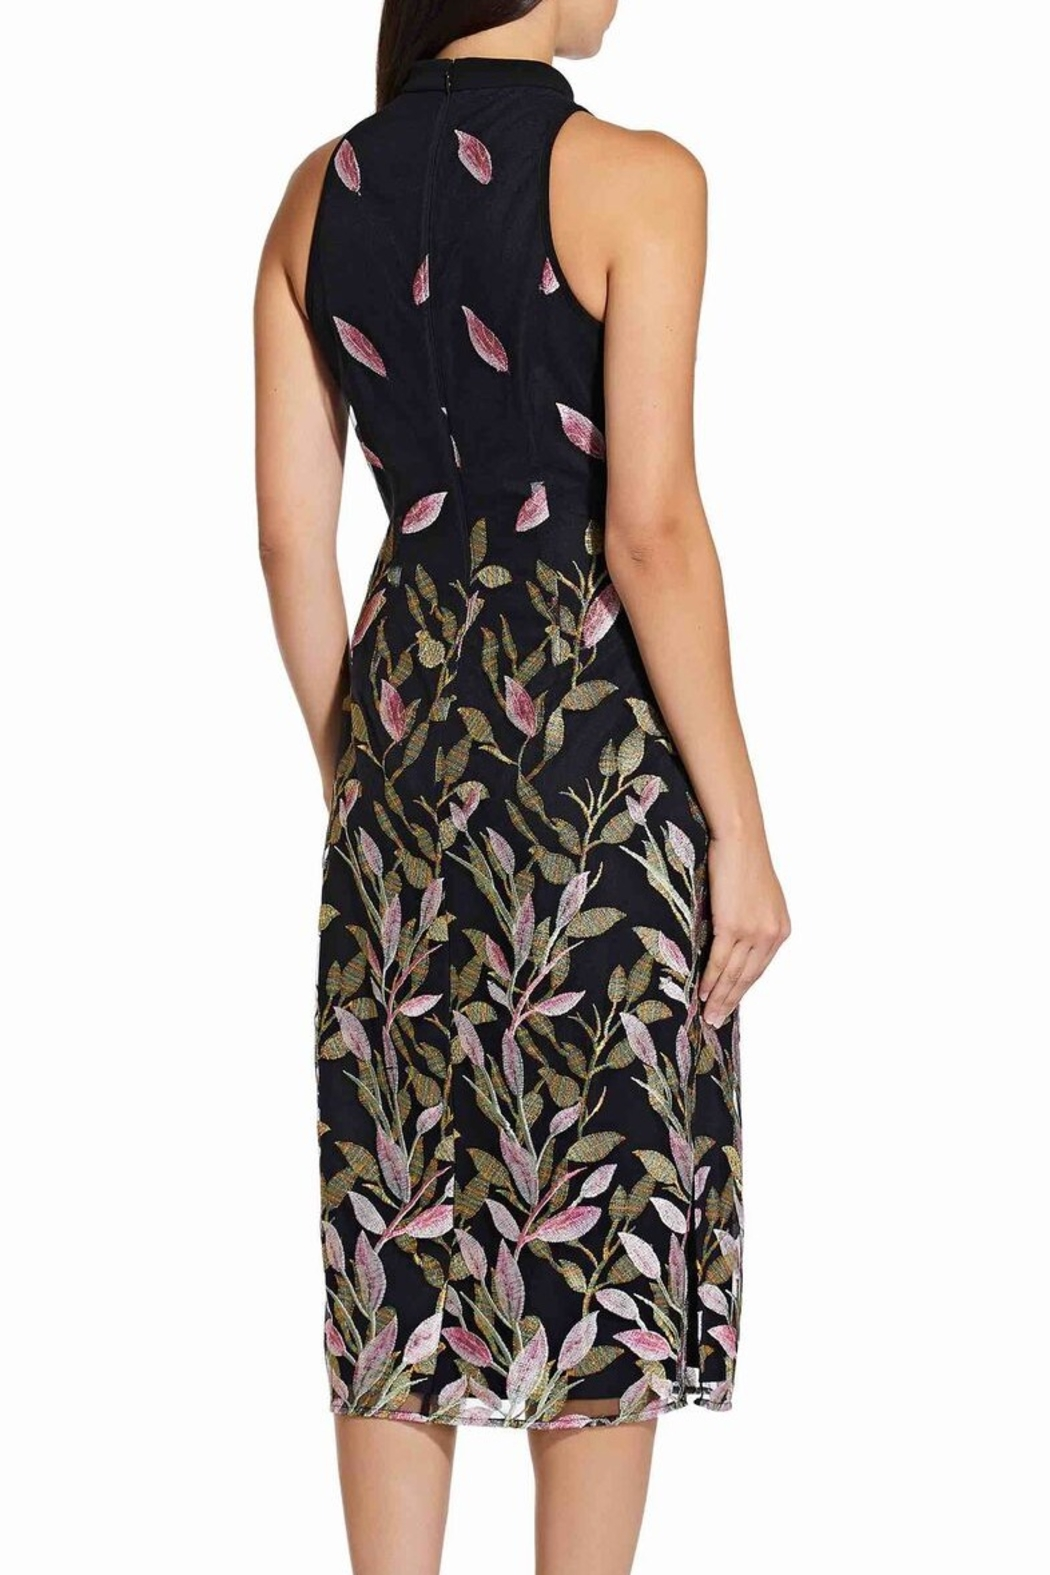 Adrianna Papell Fluttering Leaves Sheath Dress - Side Cropped Image